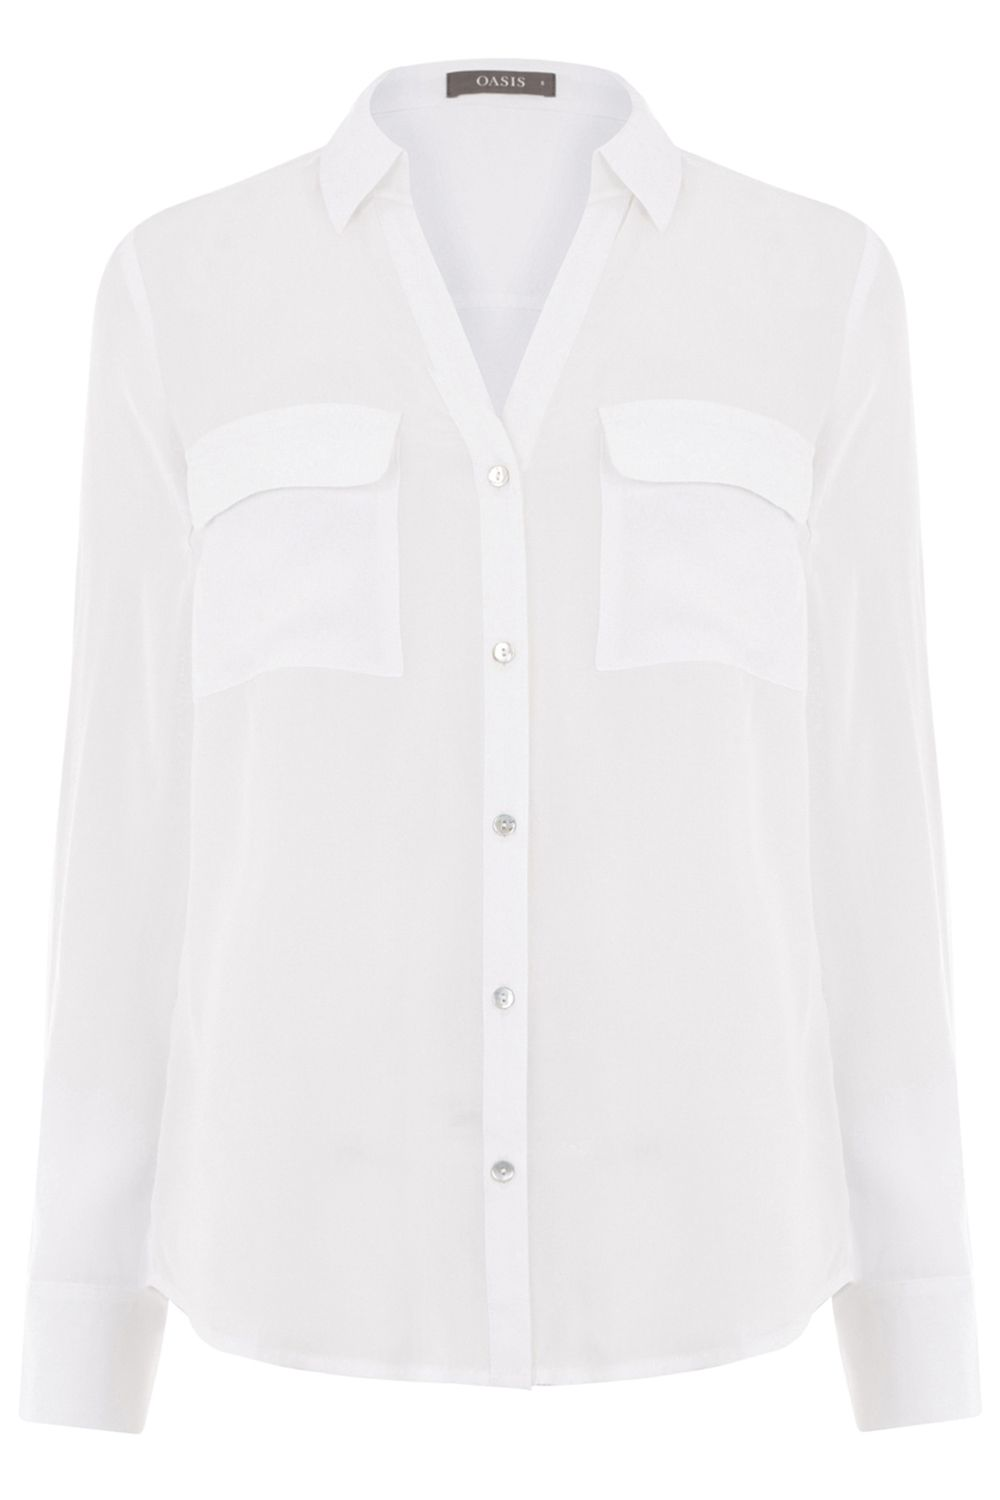 Oasis Viscose Wrap Back Shirt, White